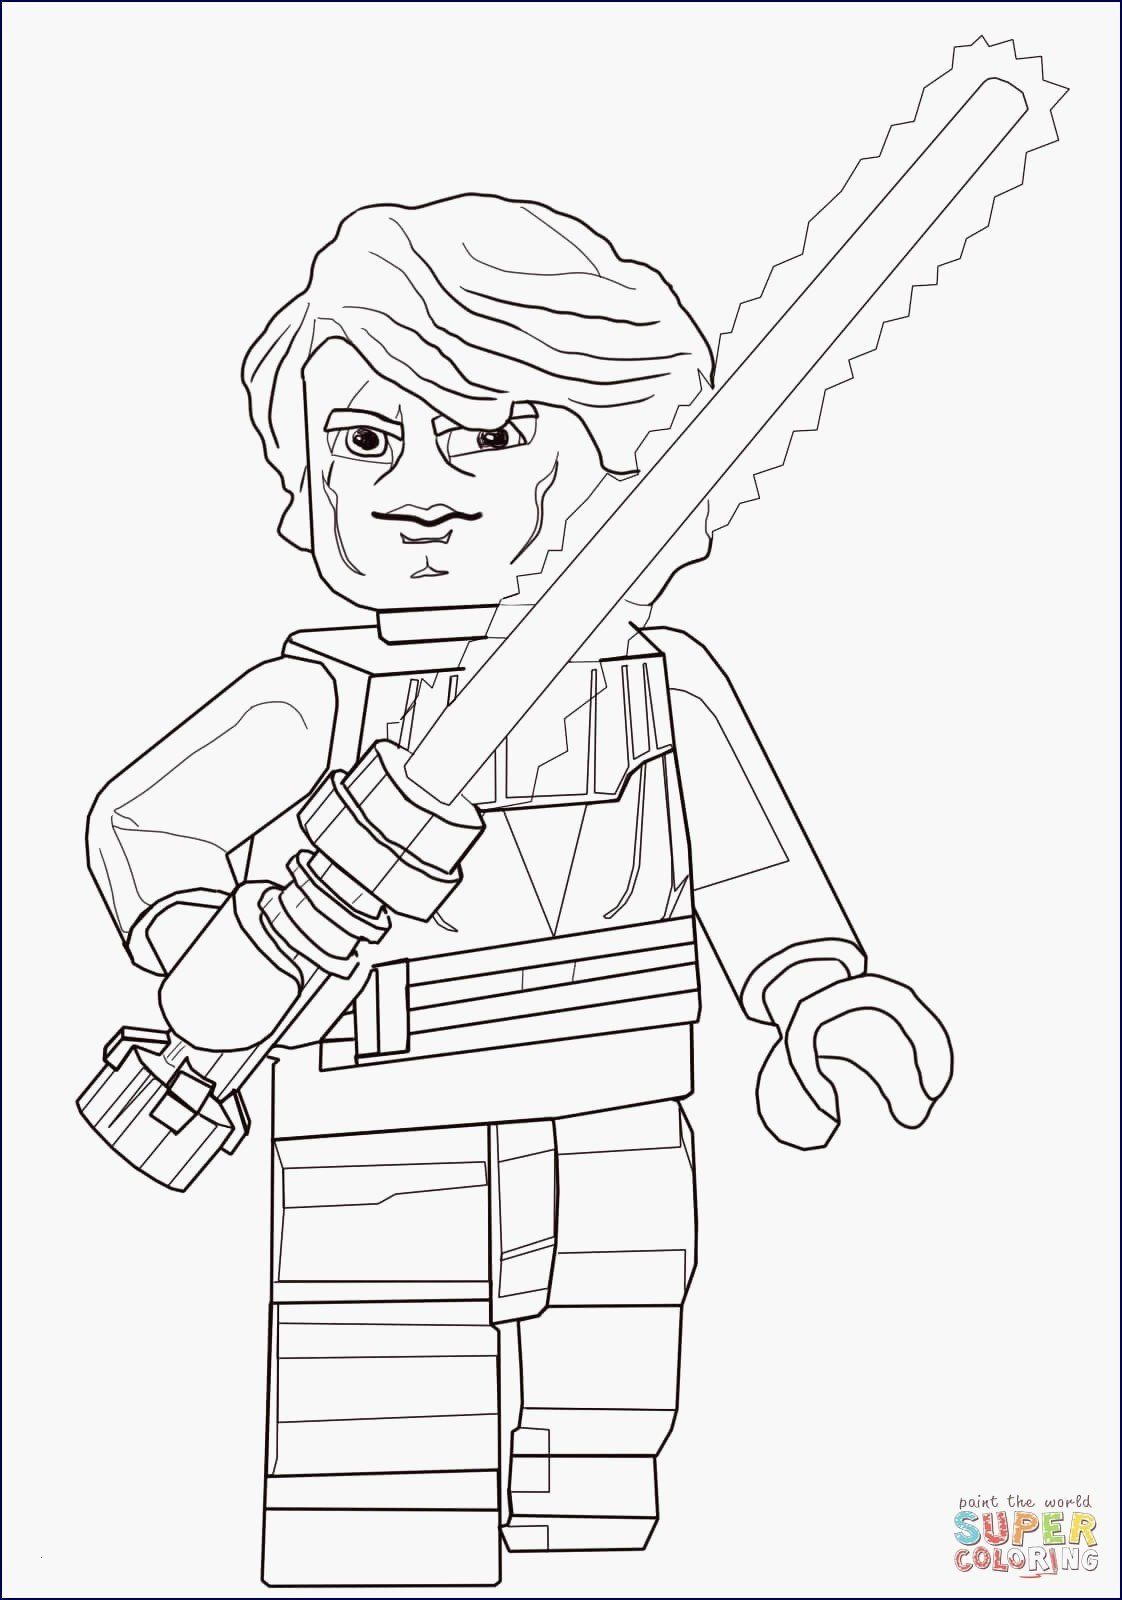 Luke Skywalker Coloring Pages Luxury Luke Skywalker